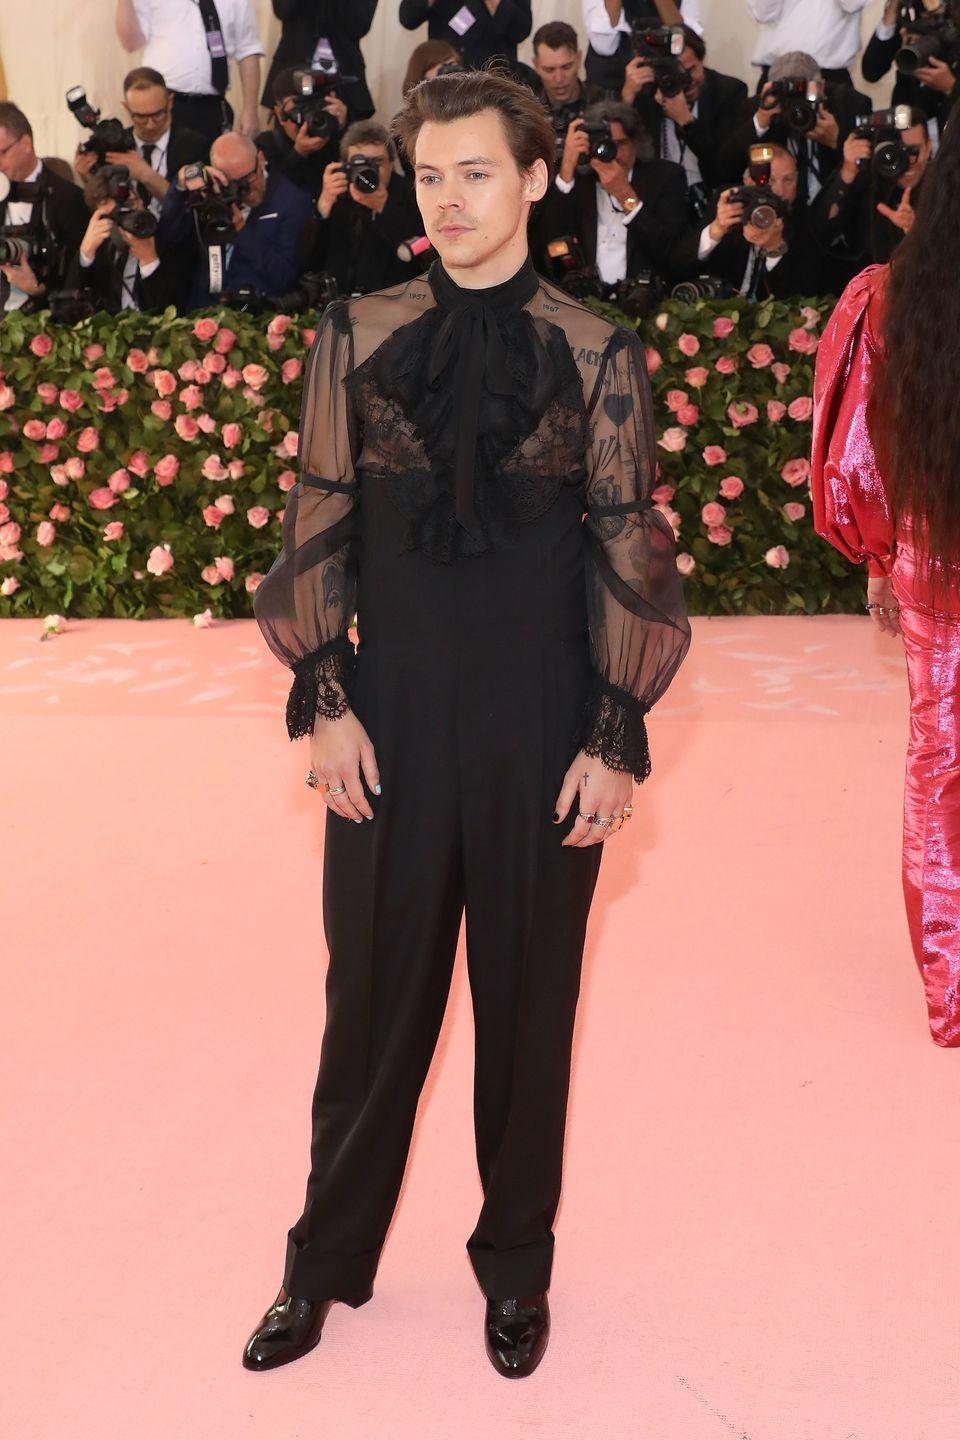 <p>Alright, so technically this is not a <em>full blown</em> suit, but we're not just gonna ignore this Met Gala ensemble by Gucci that makes Harry's legs look miles long, okay? </p>